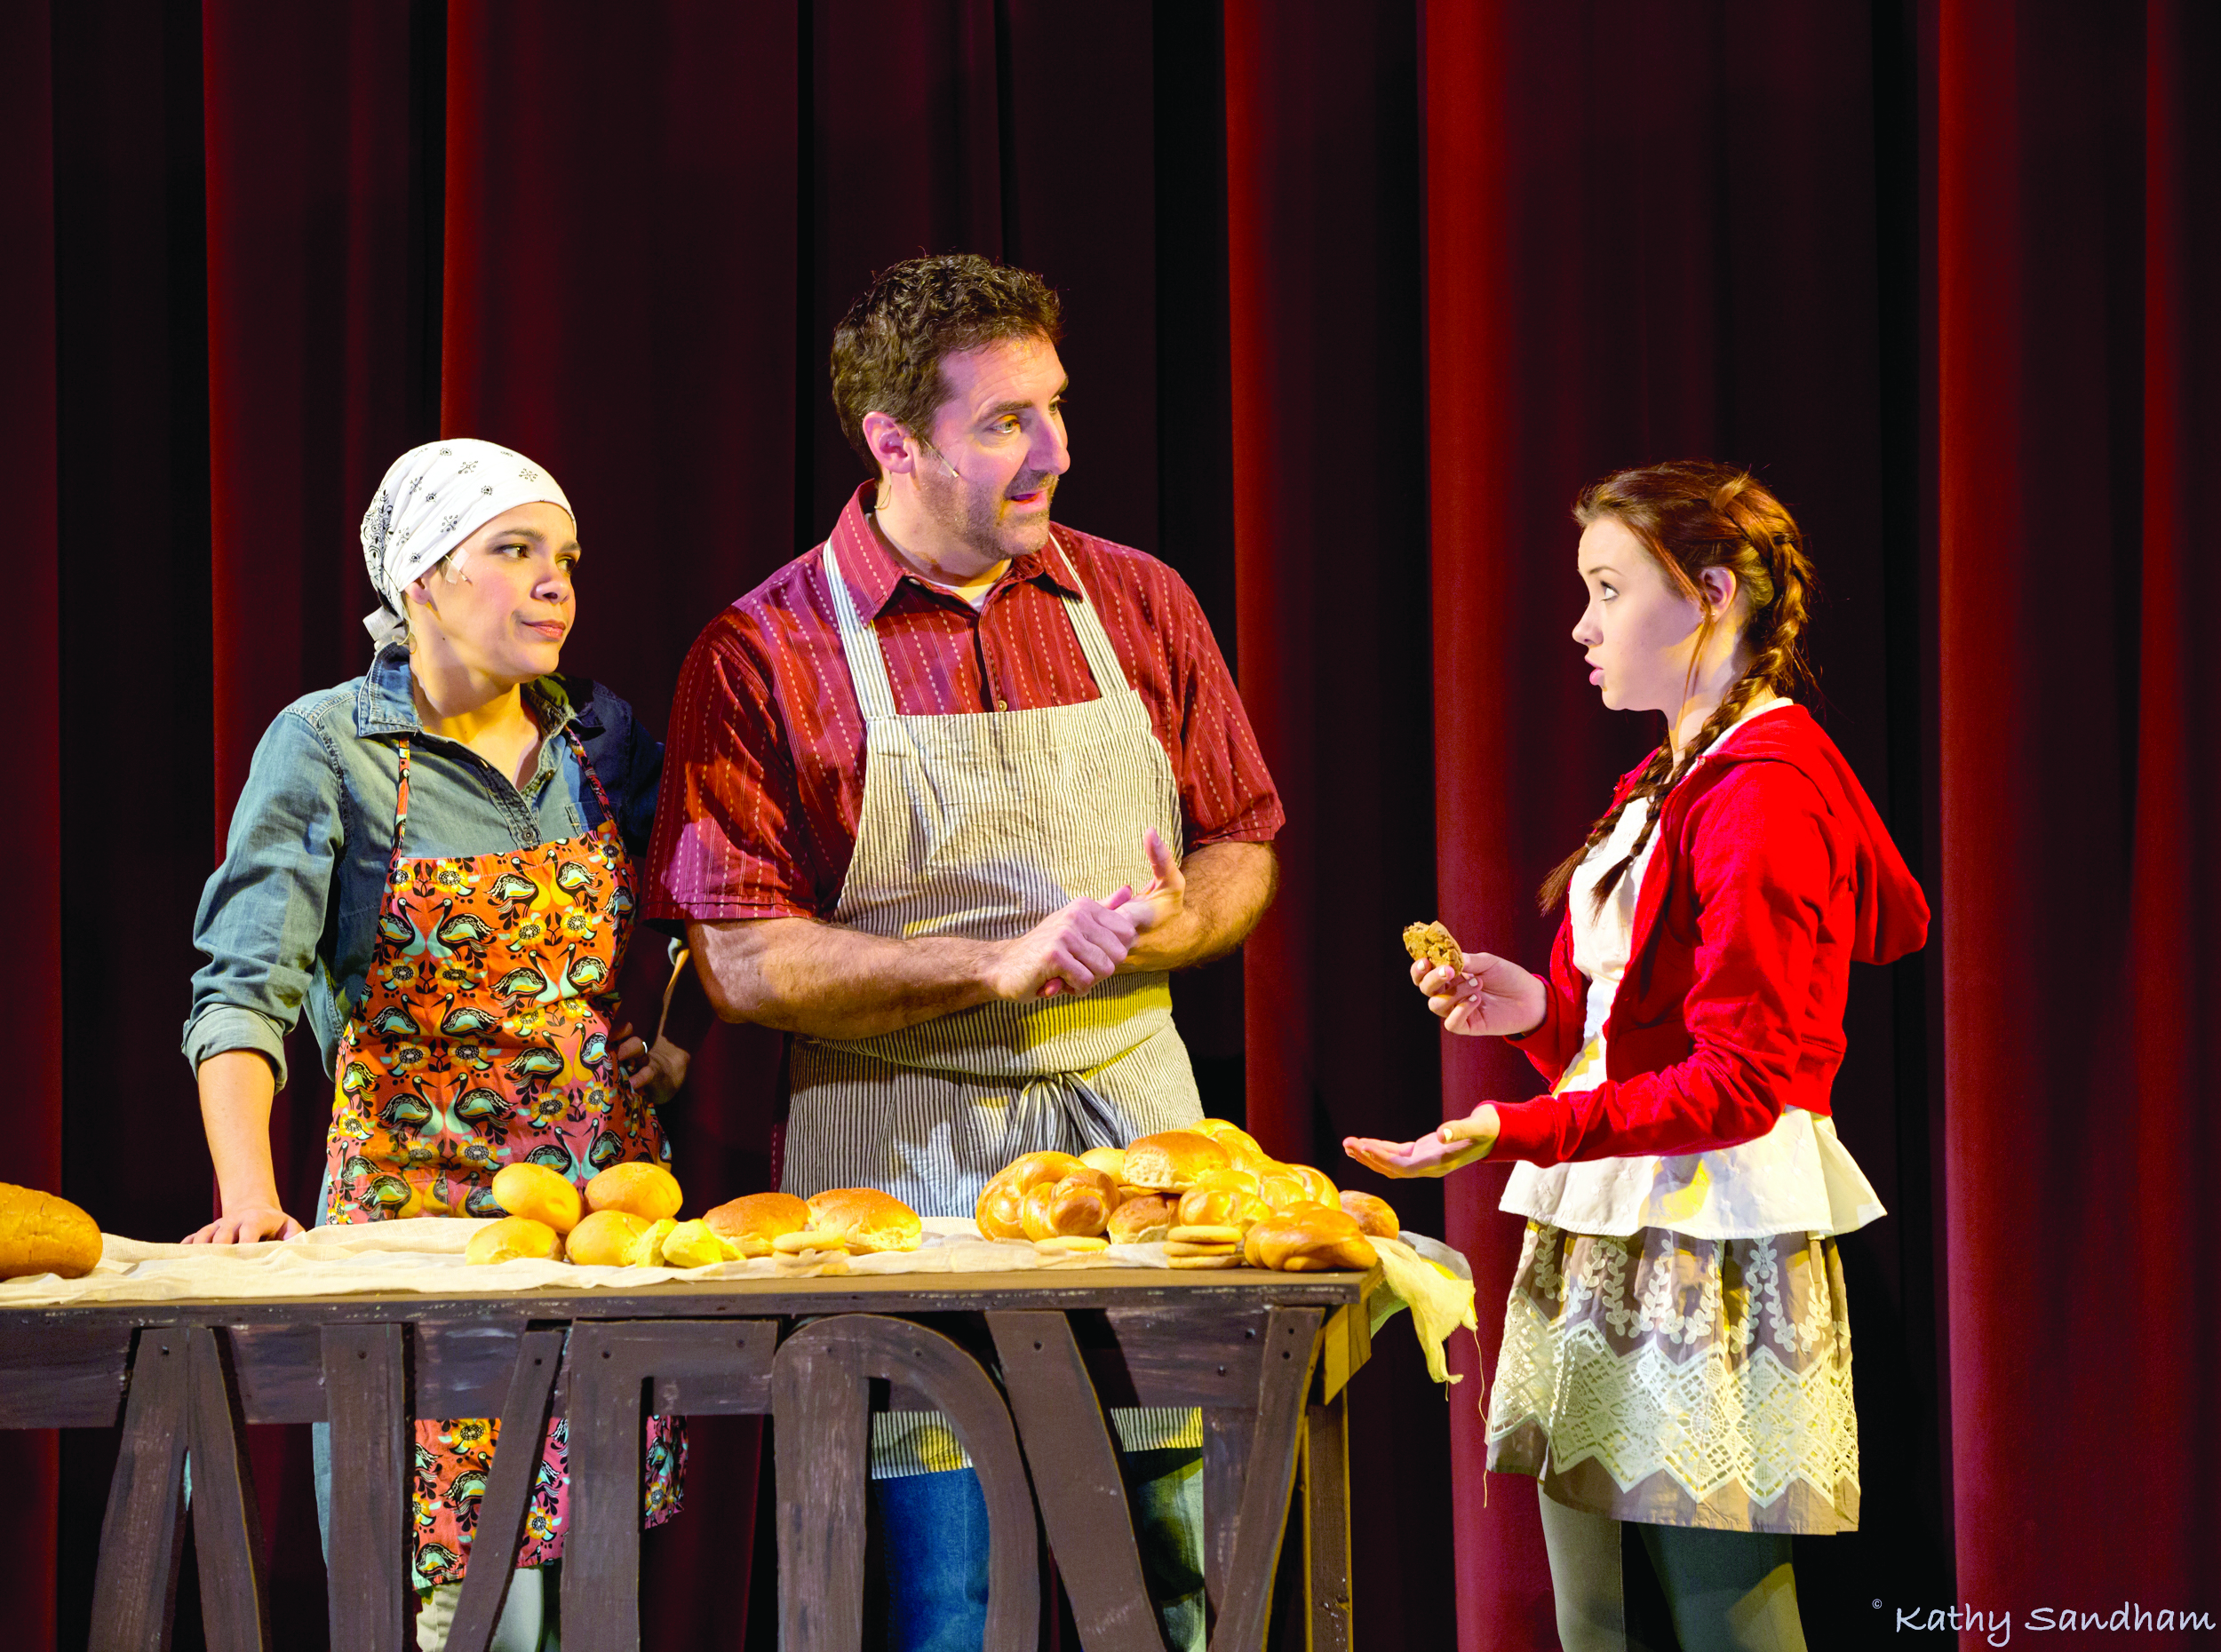 Trinidad Snider, from left, as the baker's wife, Brian Altman as the baker, and Jade McGee as Little Red Riding Hood. PHOTO   Kathy Sandham